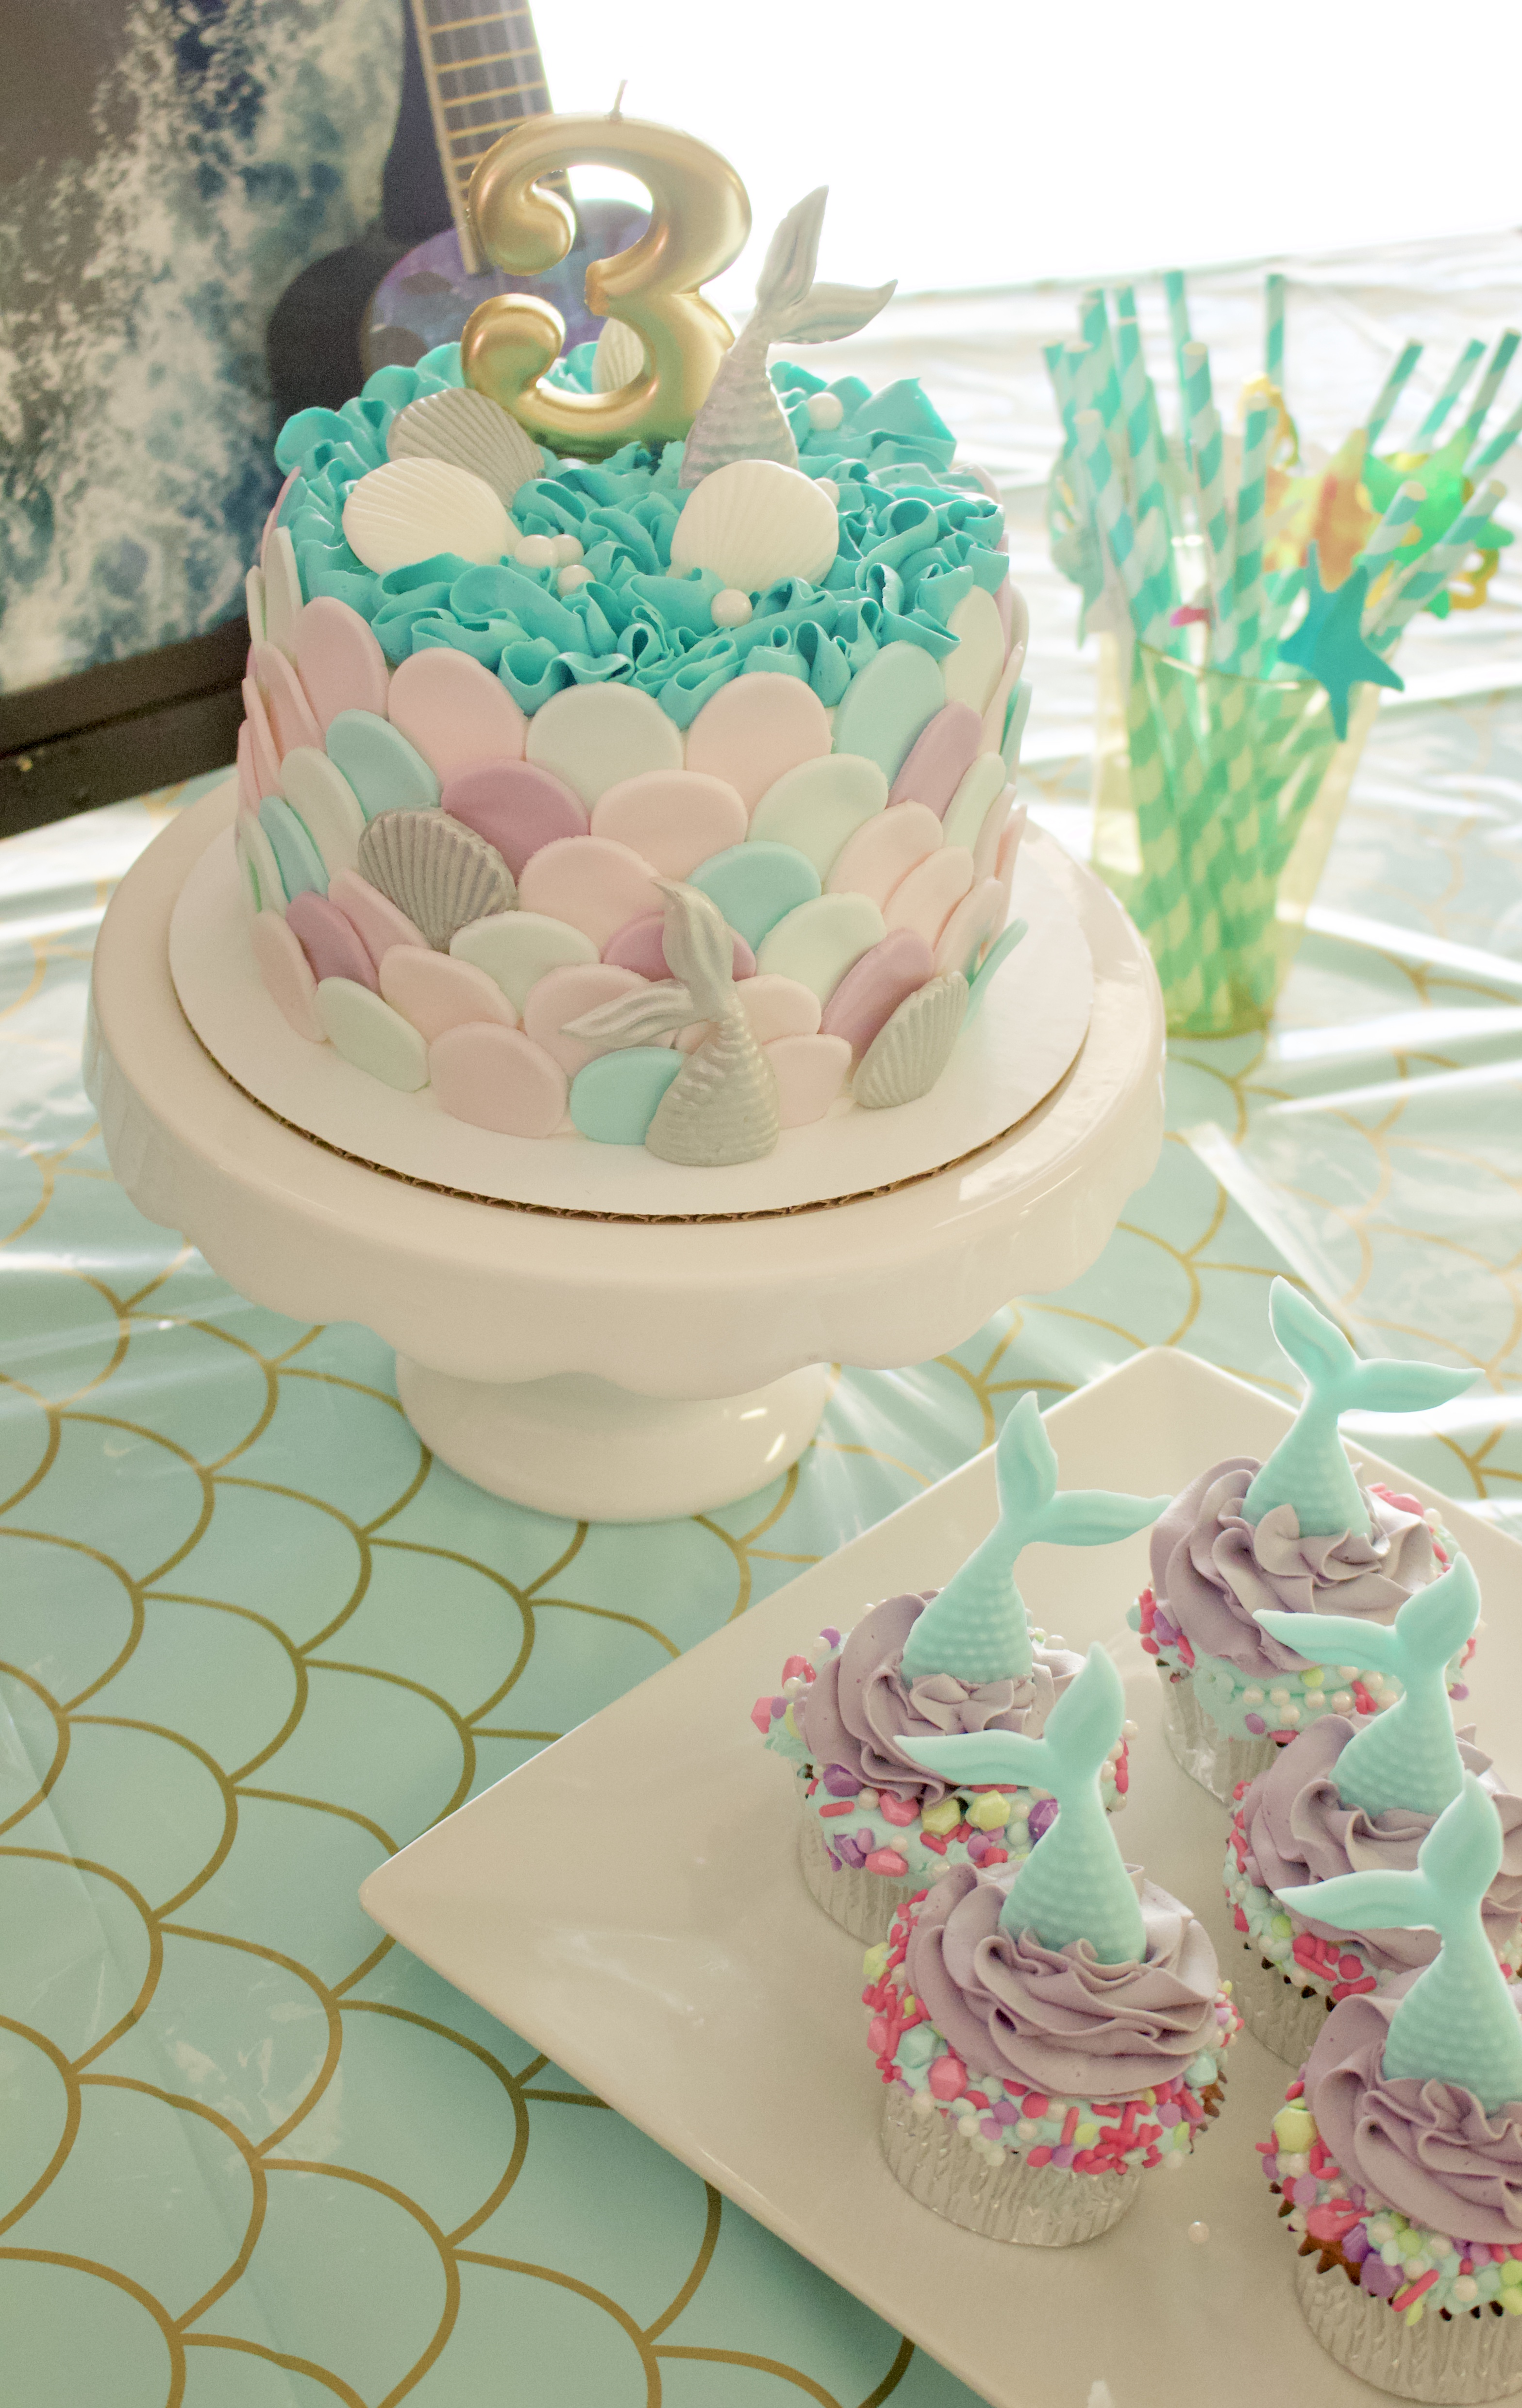 mermaid party cake and cupcakes #mermaidcake #mermaidparty #birthdayparty #birthdaycake